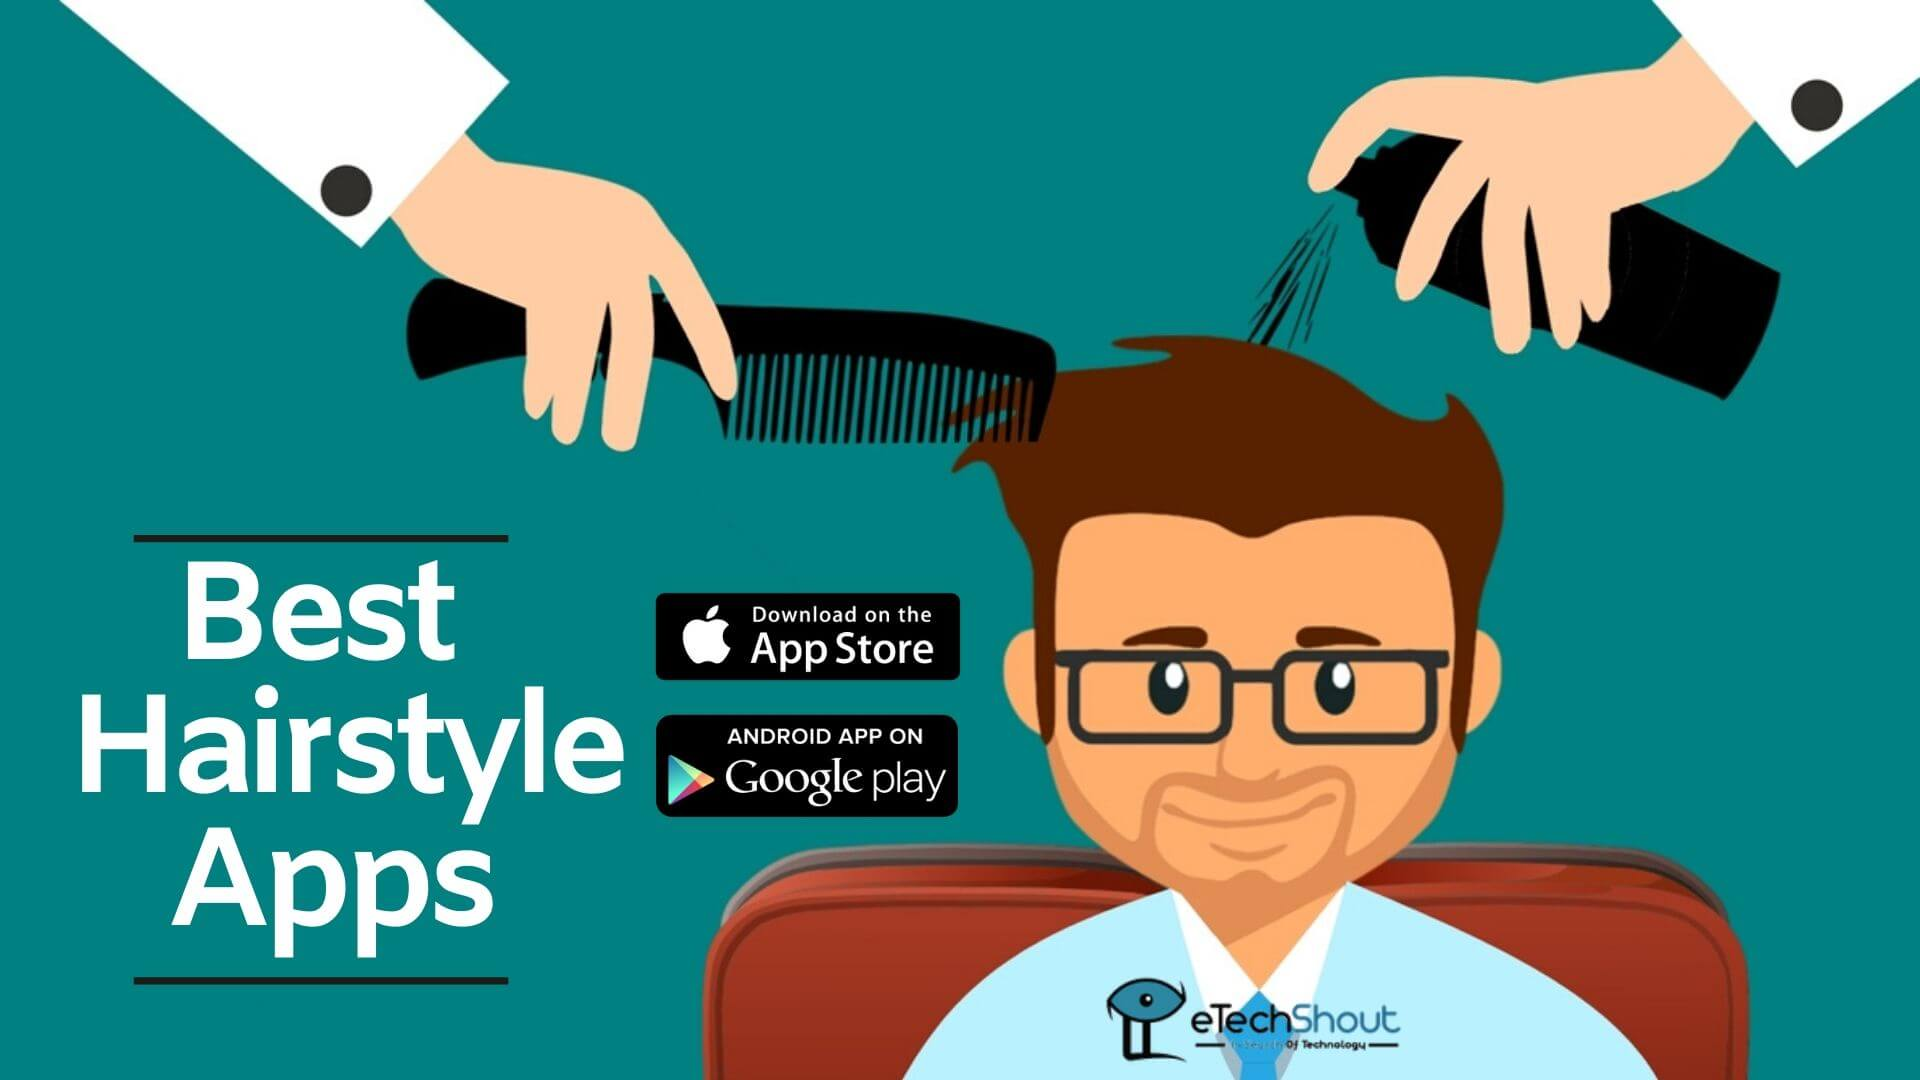 Best Hairstyle Apps for free